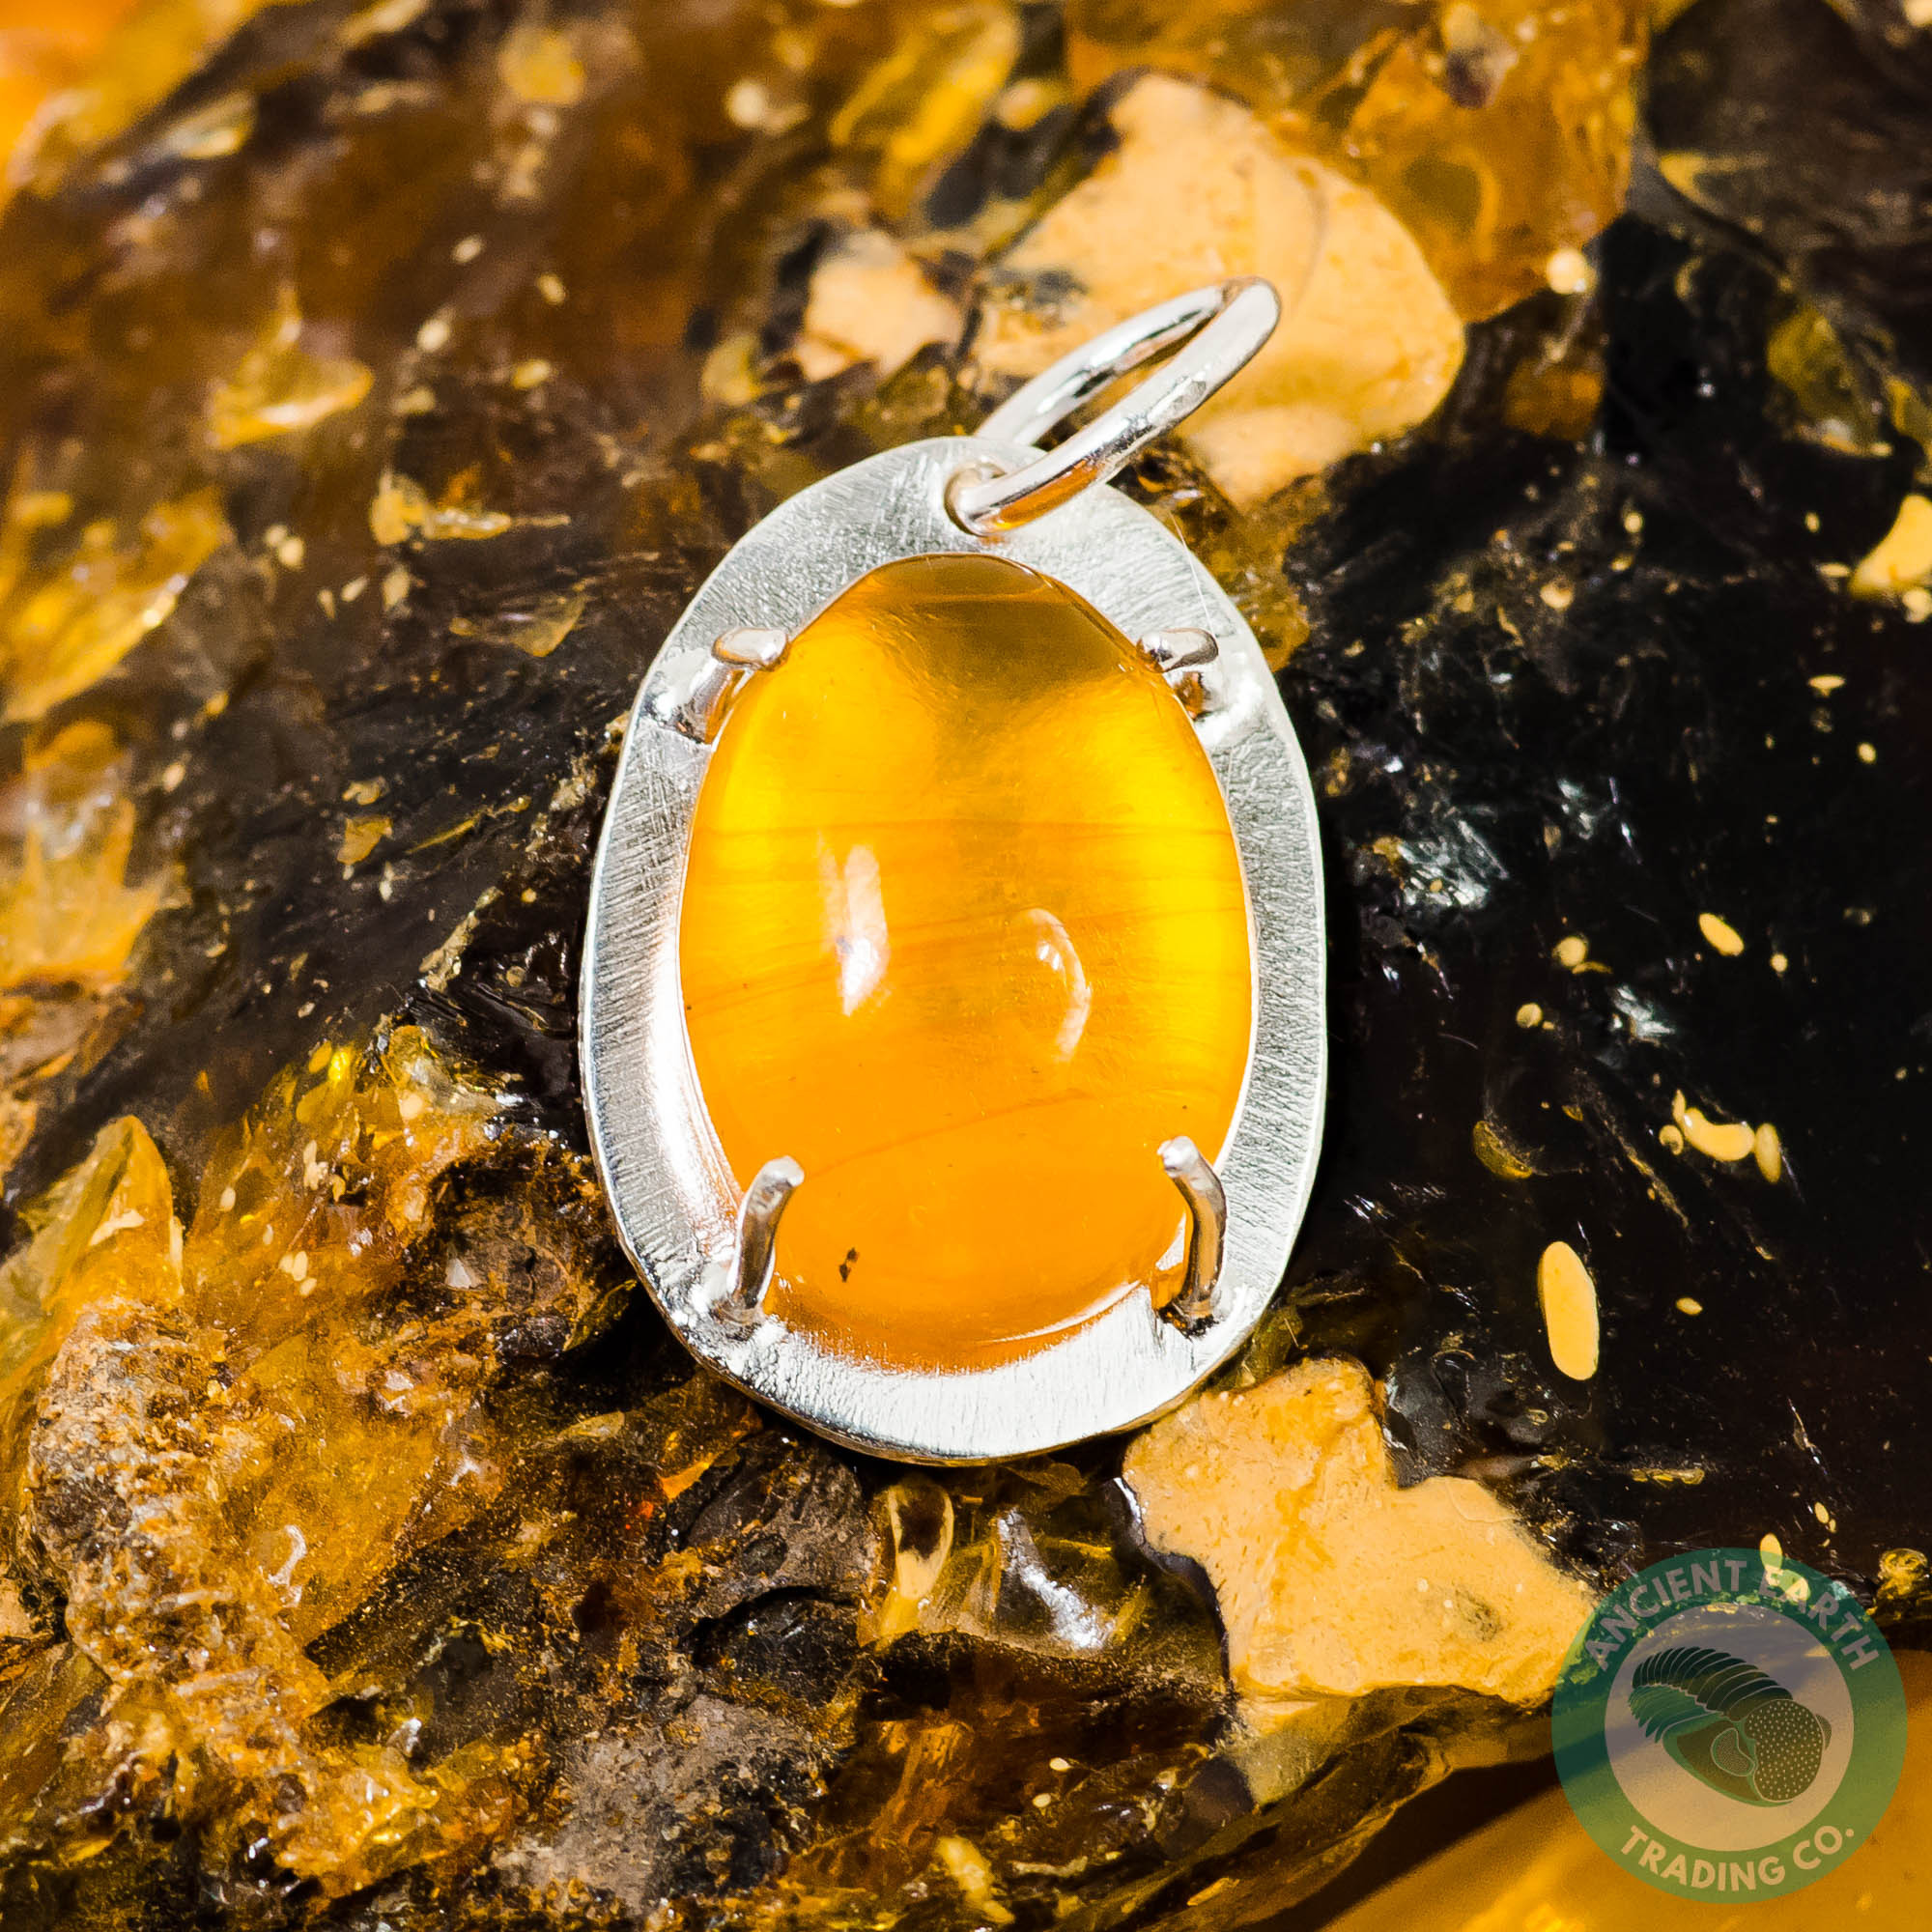 24mm Dominican Amber Fossil Insect Sterling Silver Pendant